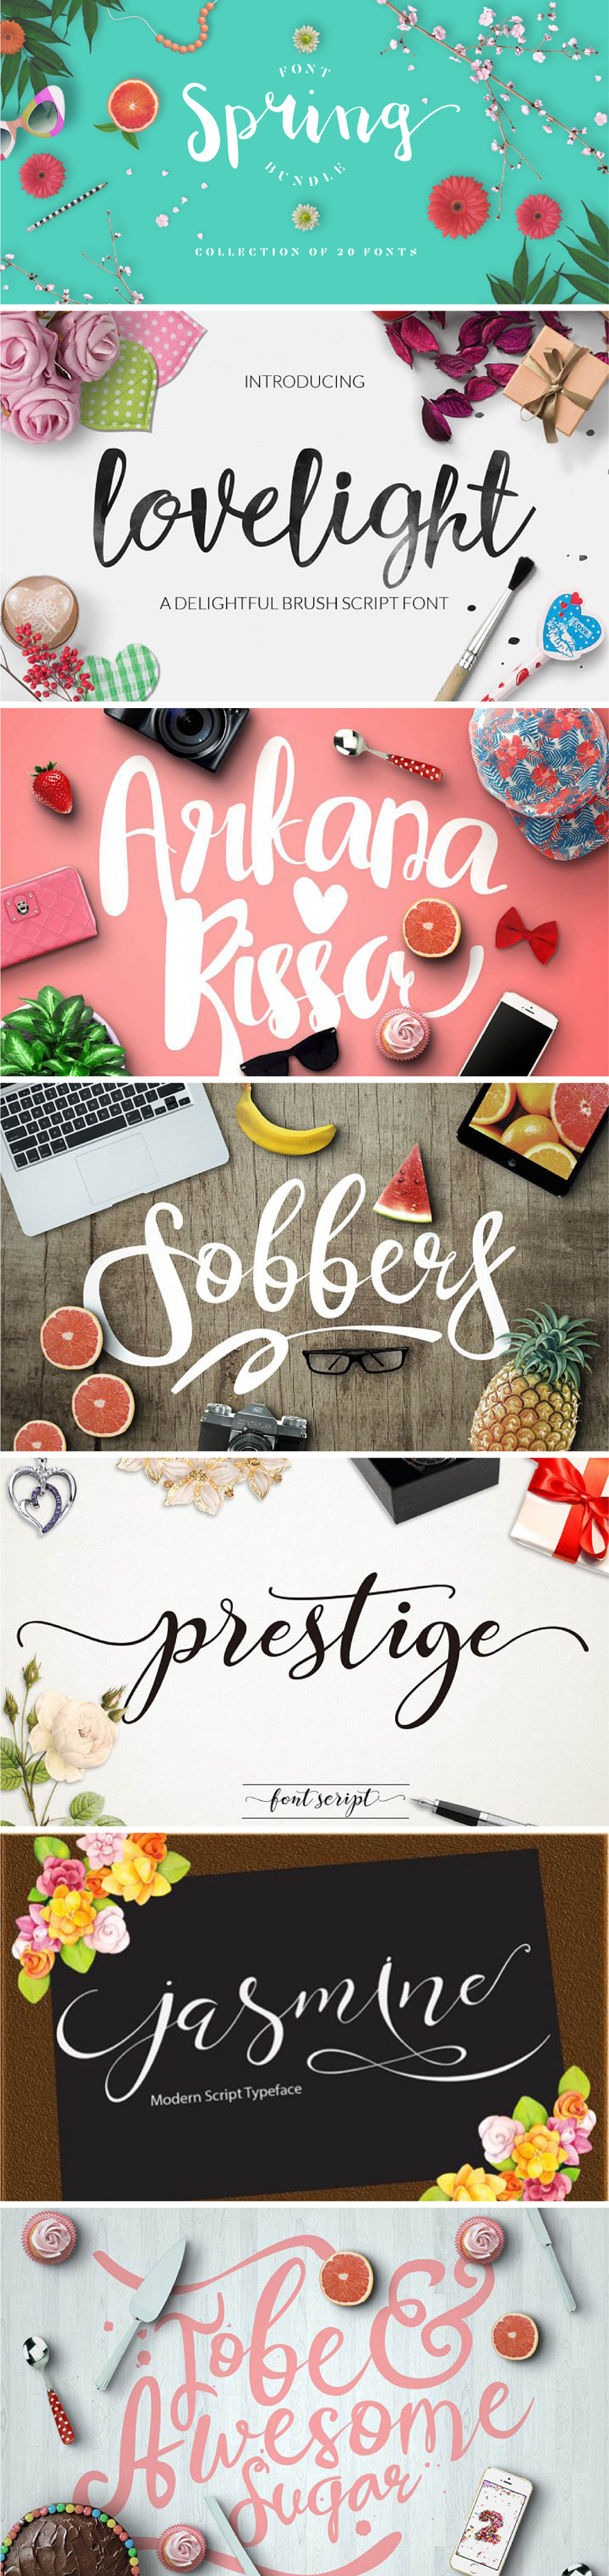 This gorgeous bundle of 20 fonts comes packed with beautiful typefaces worthy of any design work.